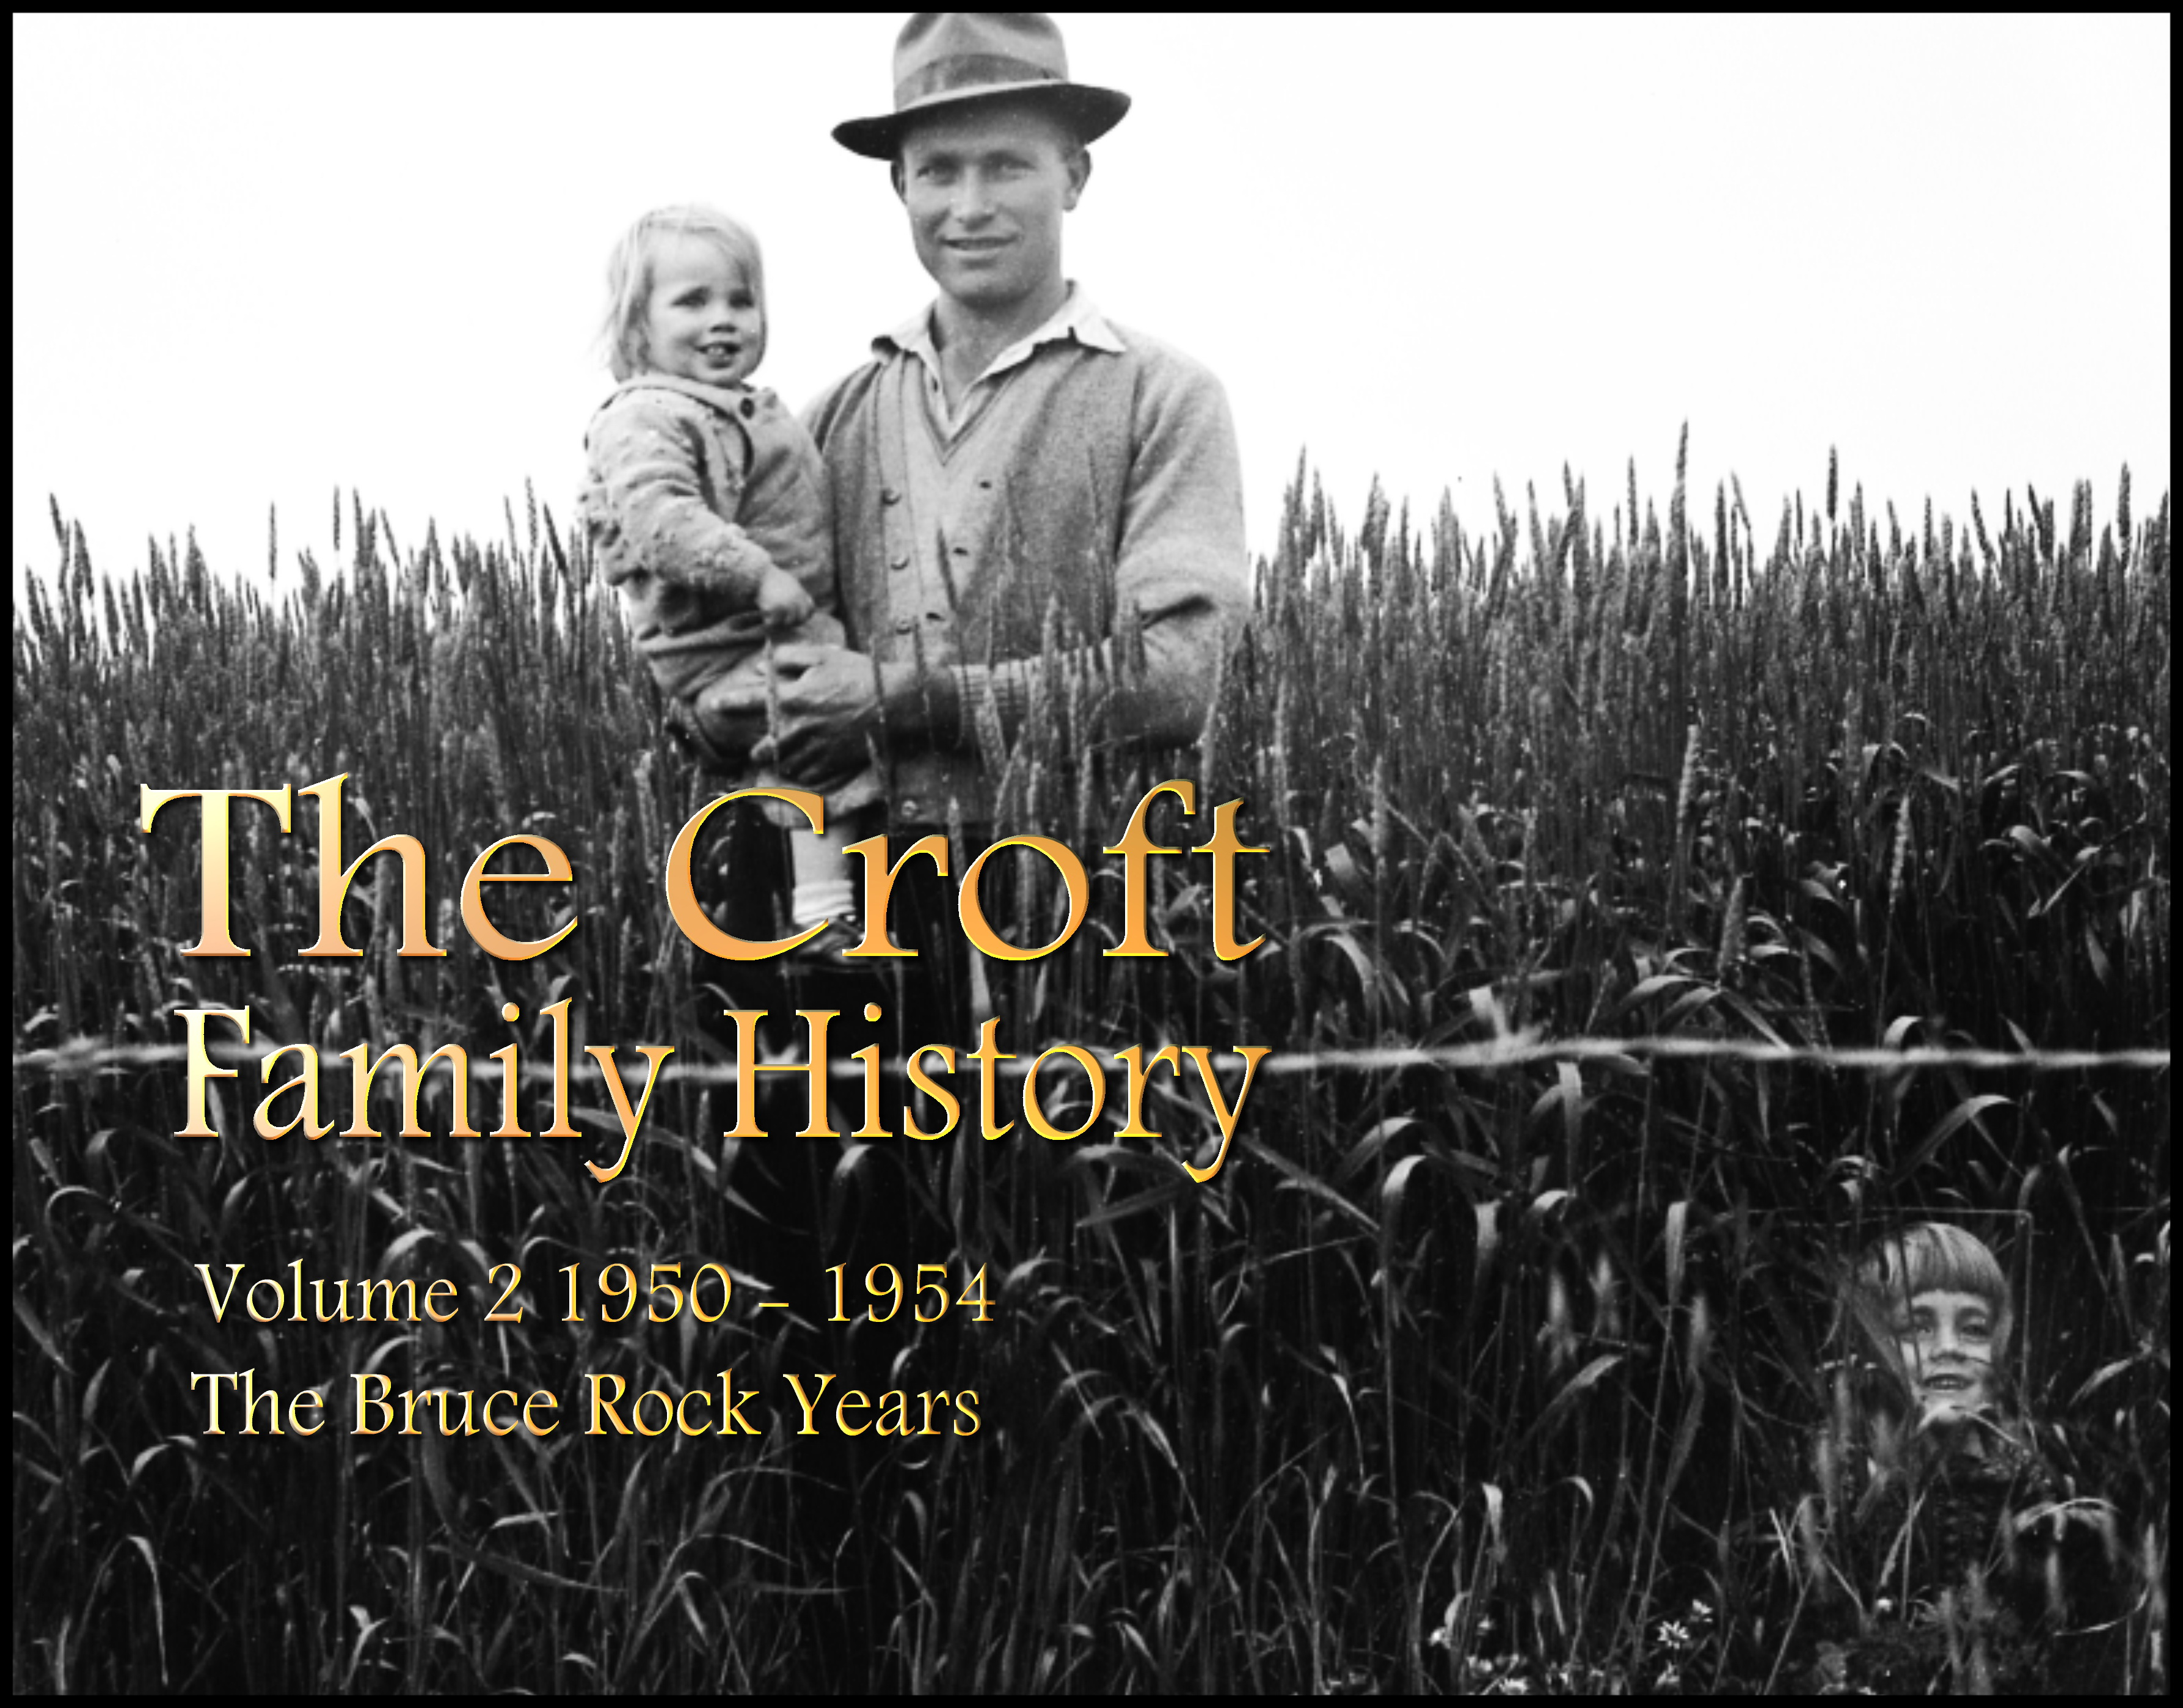 Croft Family History vol. 2 cover2A